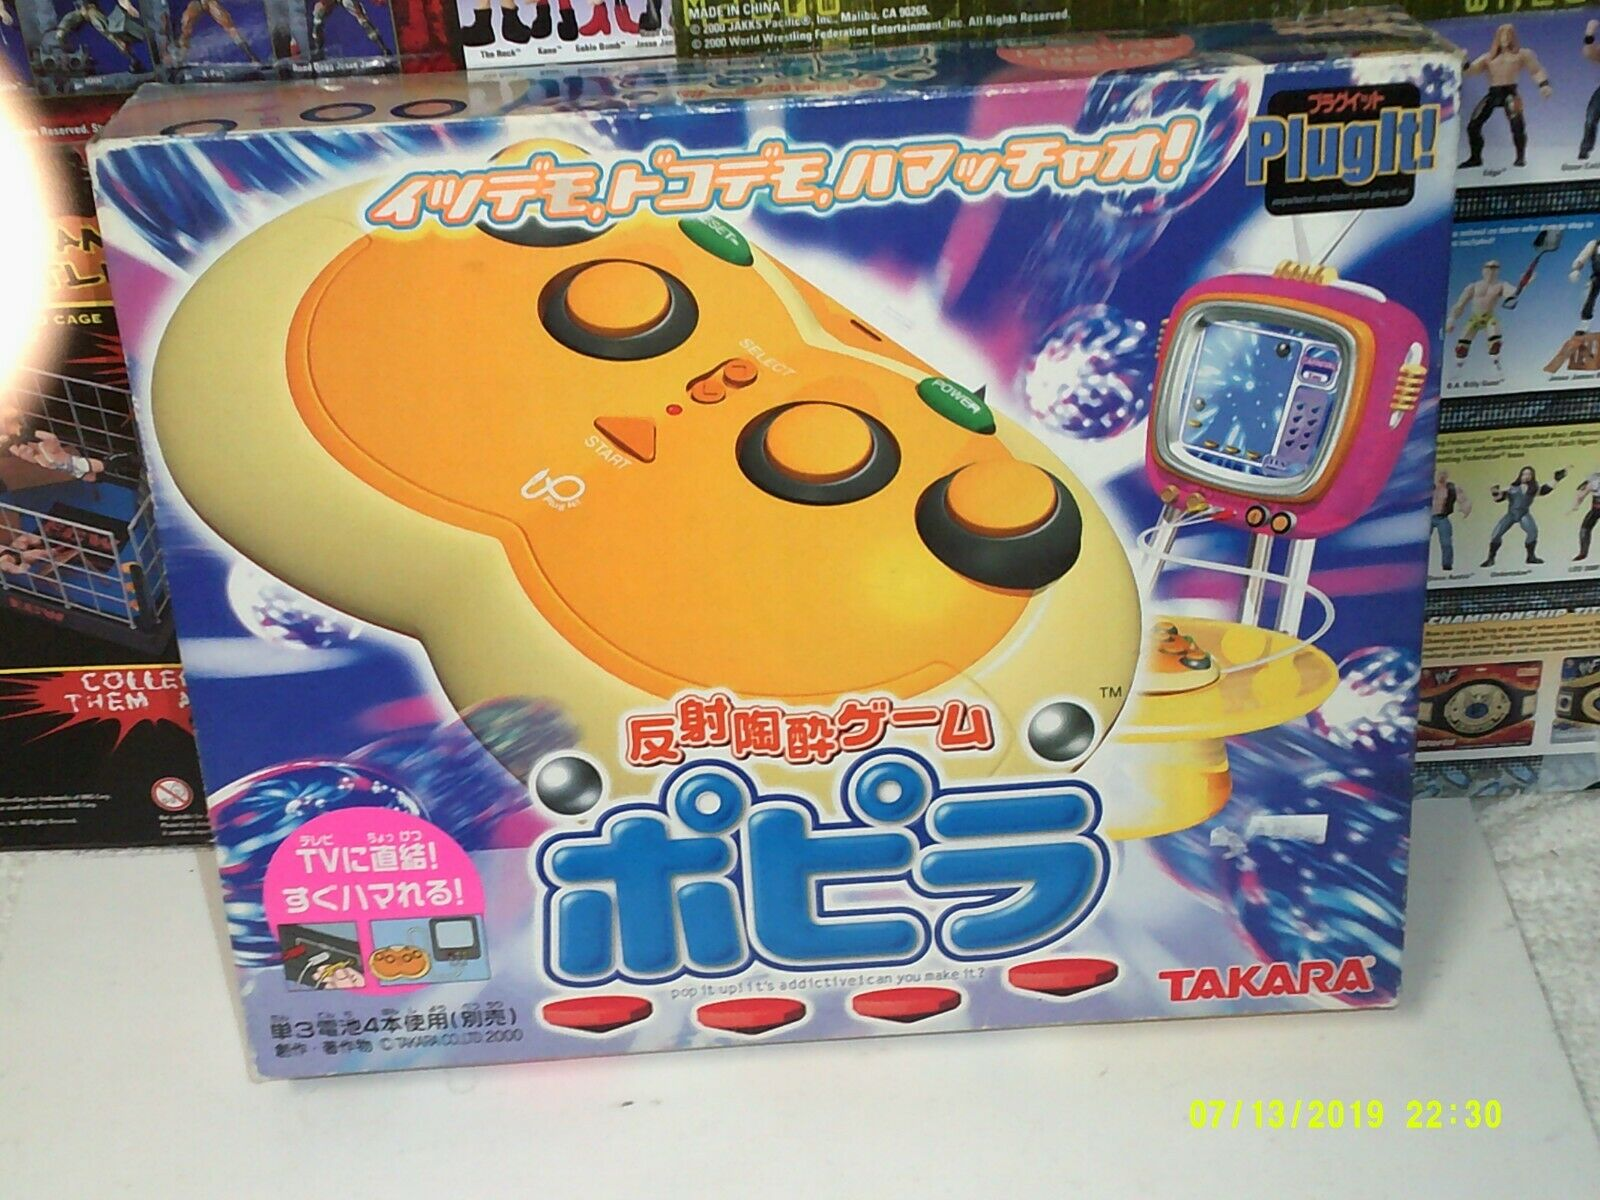 Takara Tomy 2000 Popira Plugit! brand new & sealed plug in tv japan import